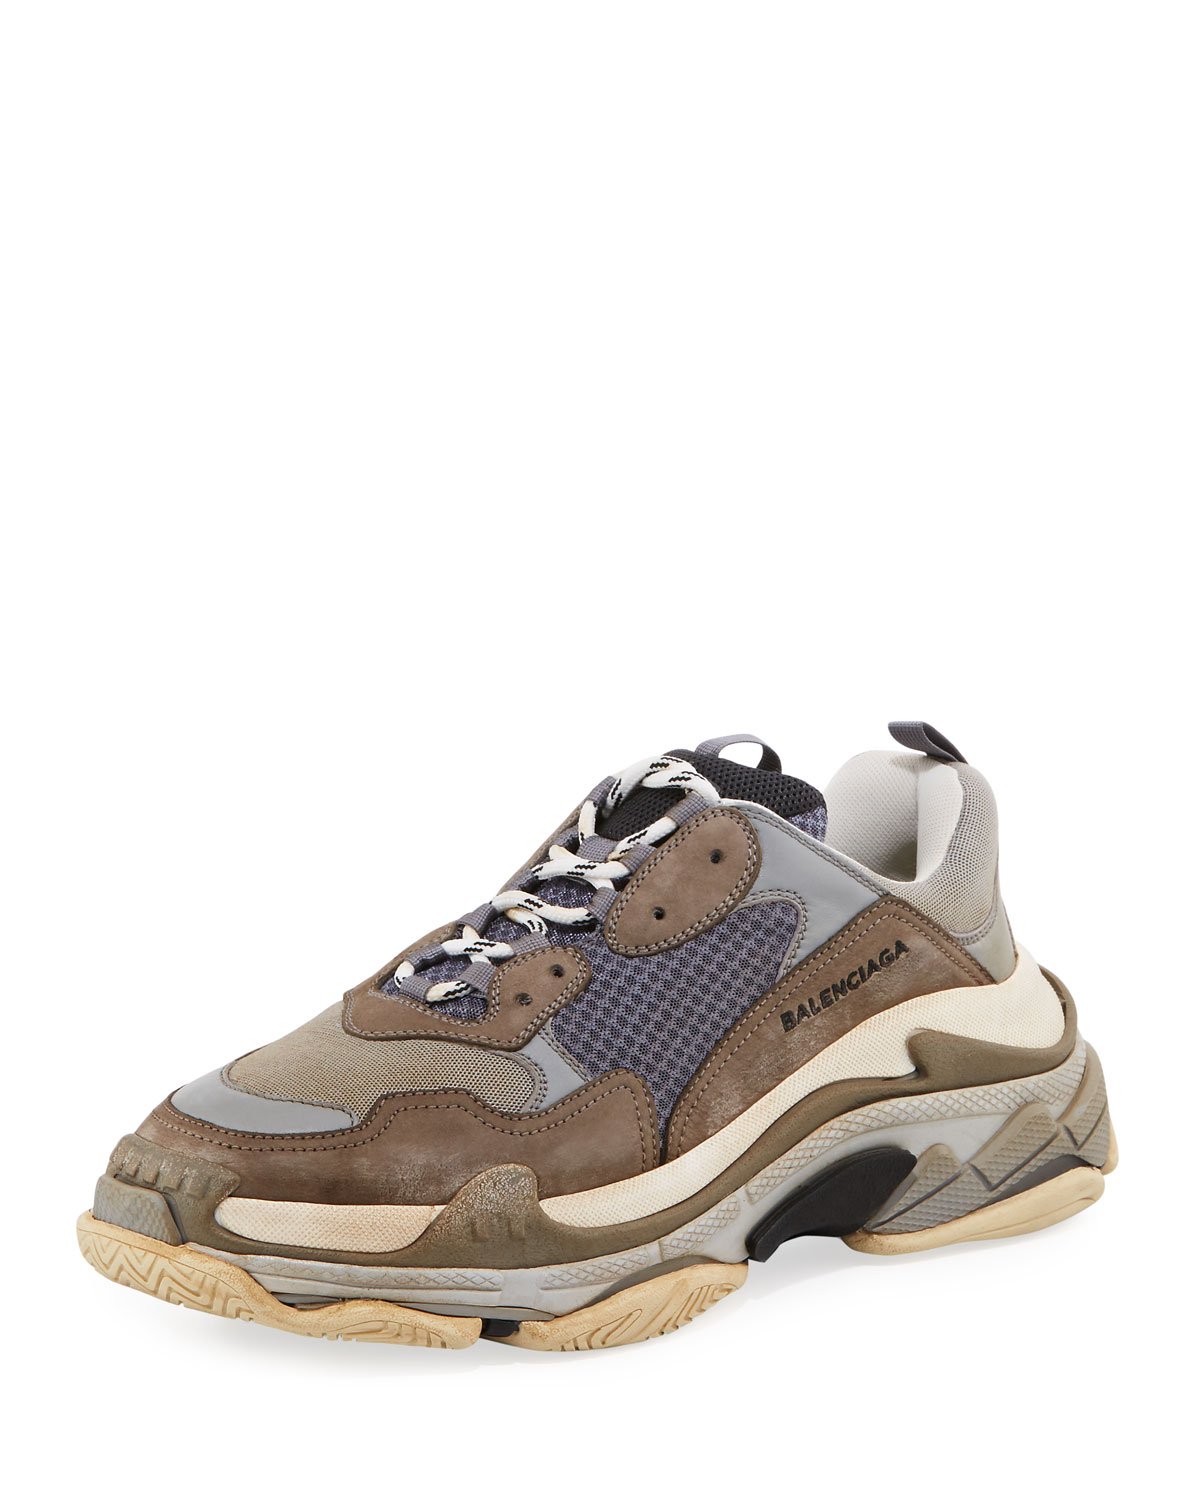 aa858aec58bd Balenciaga Triple S Mesh   Leather Trainer Sneaker